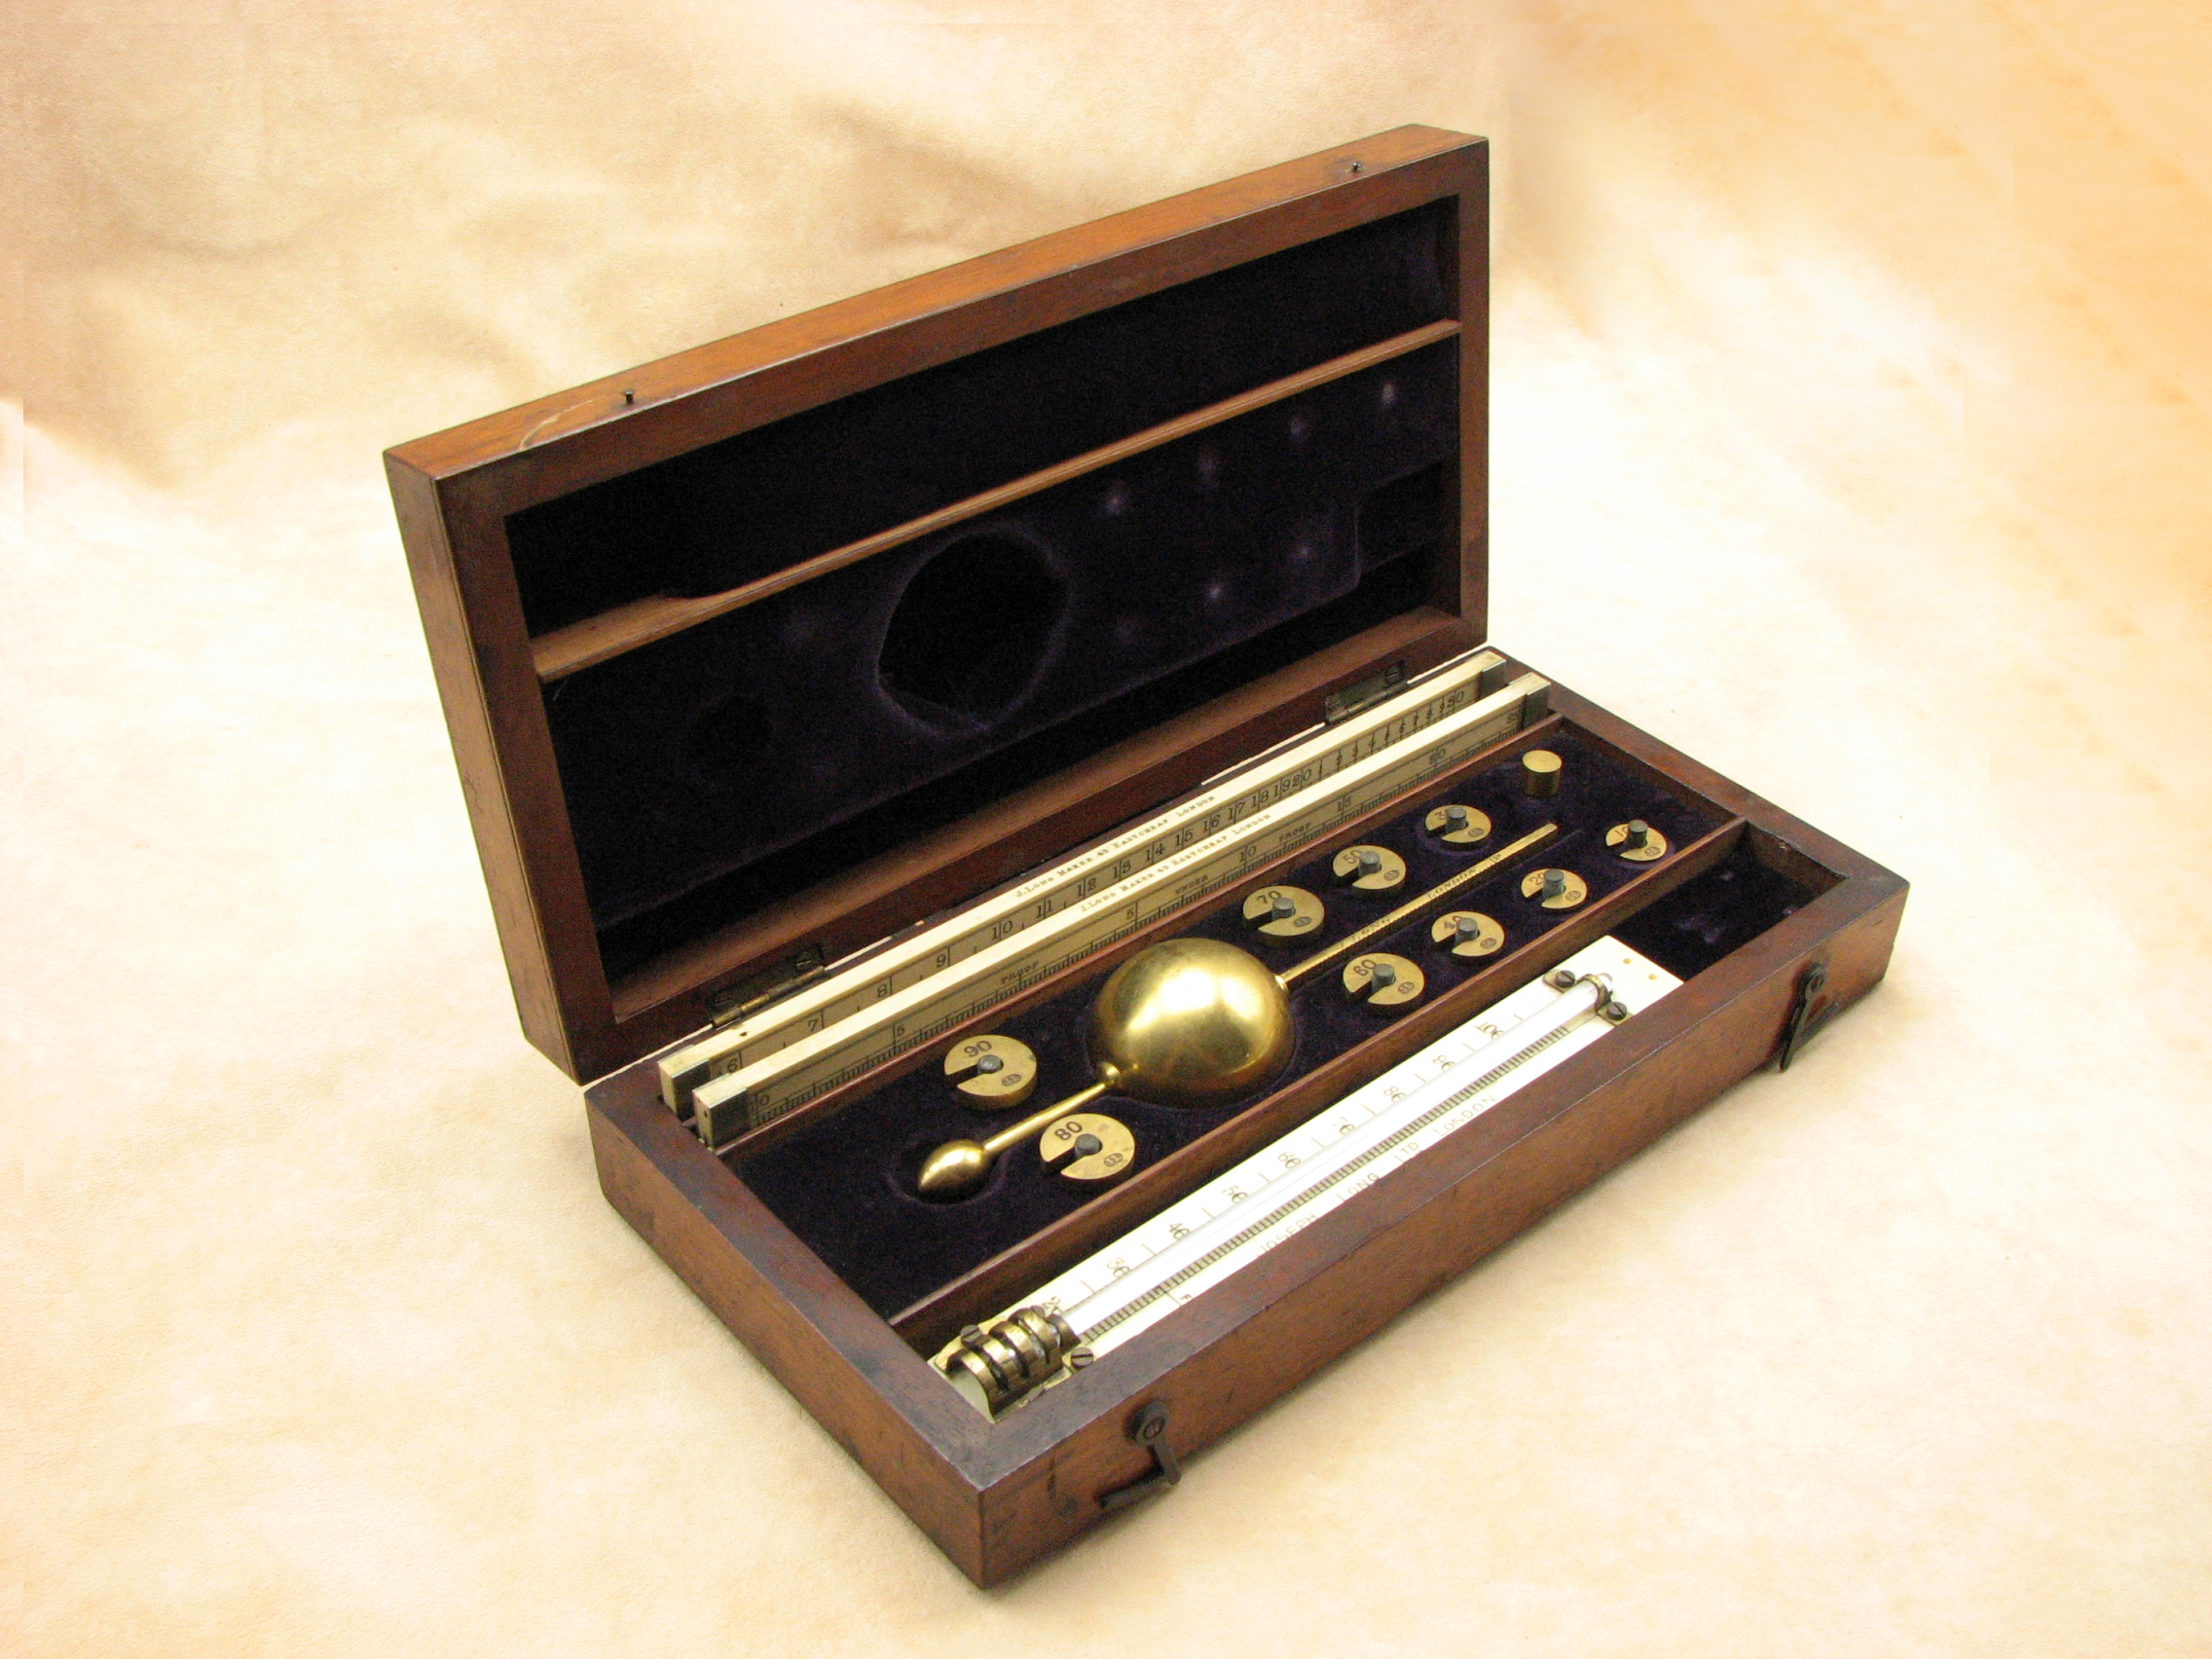 Exceptional 19th century Sikes Hydrometer set by Joseph Long, 43 Eastcheap